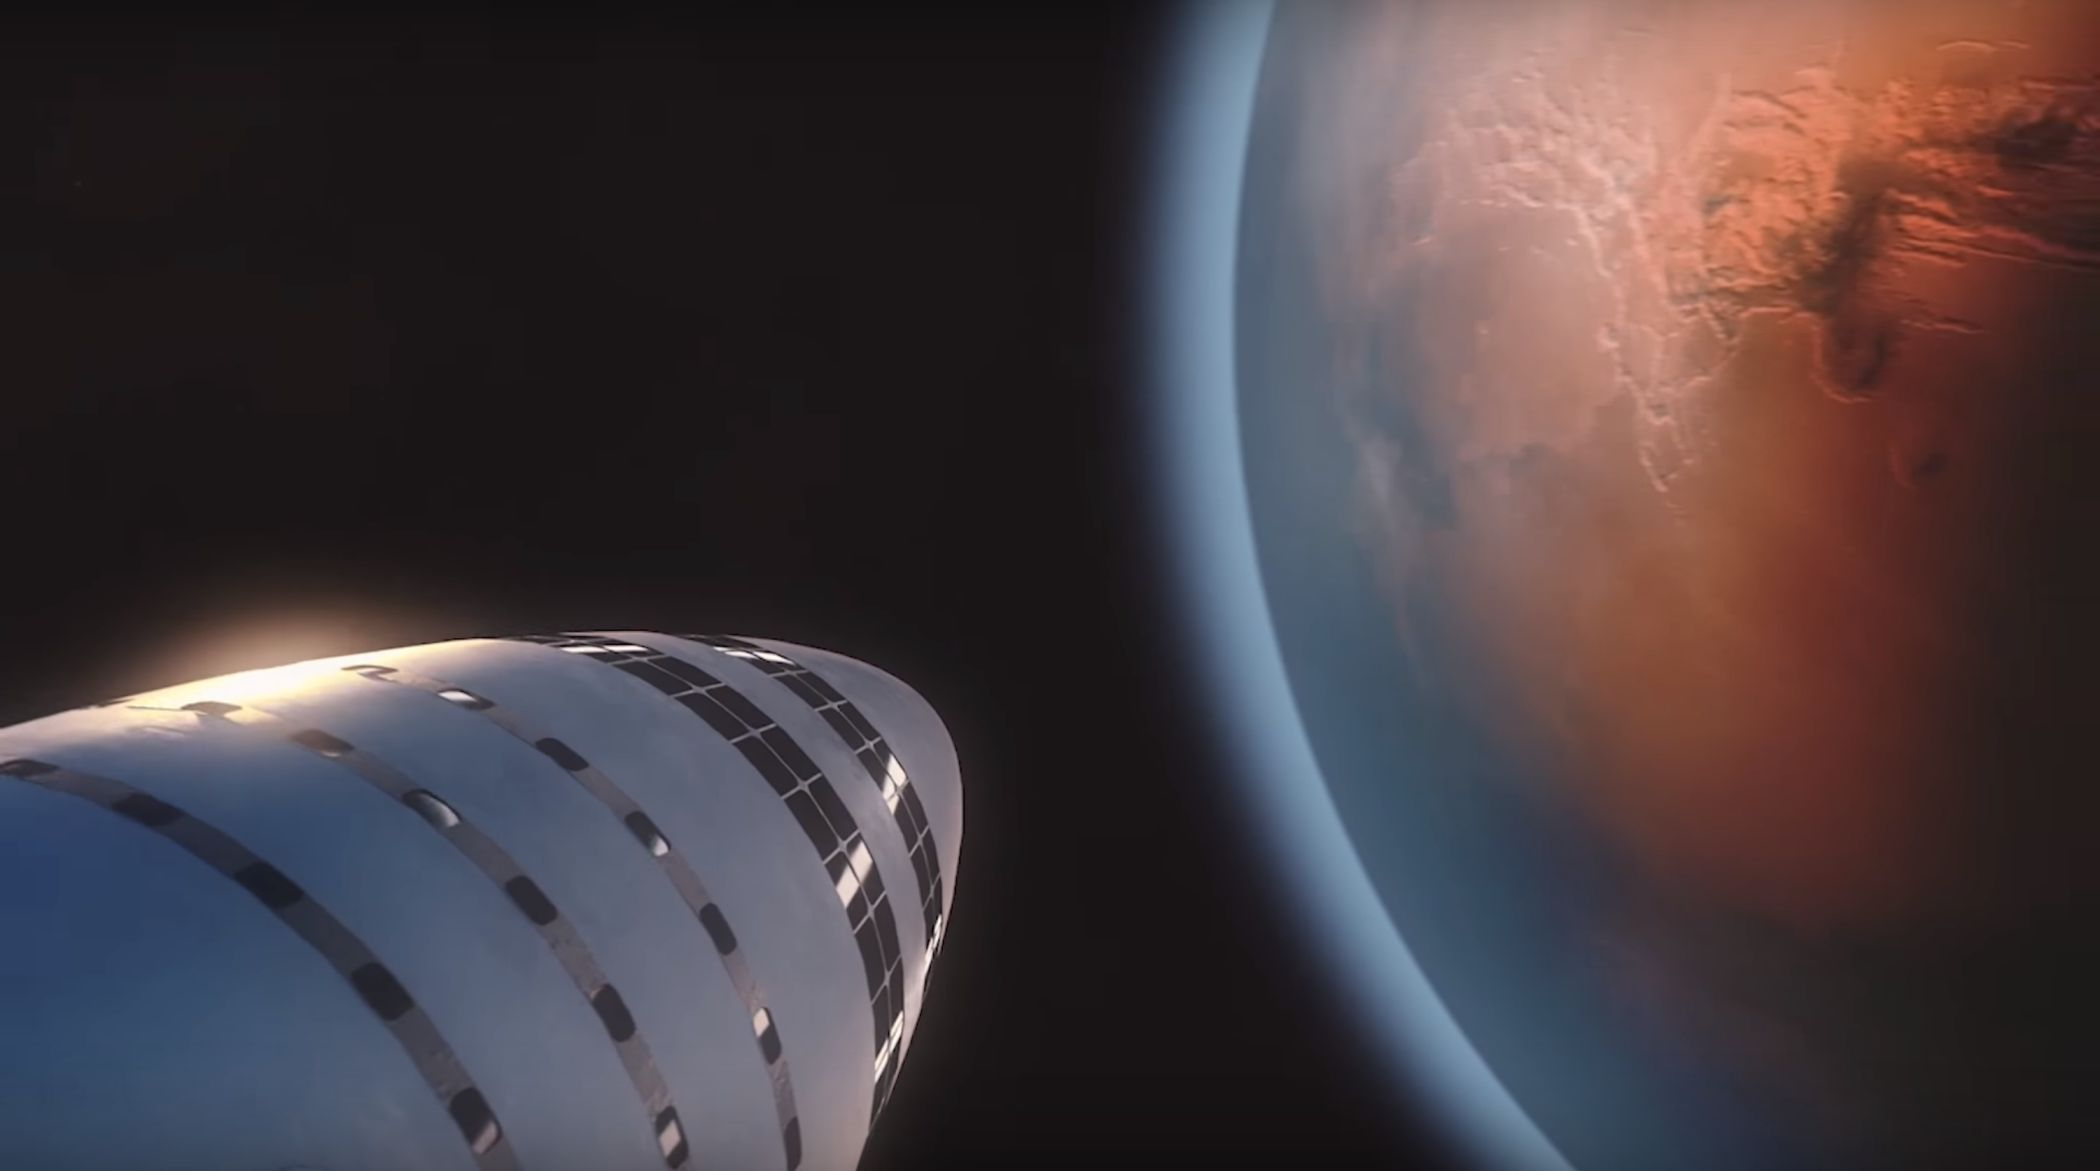 Spacex S Bfr Mars Rocket And Spaceship Rendered In